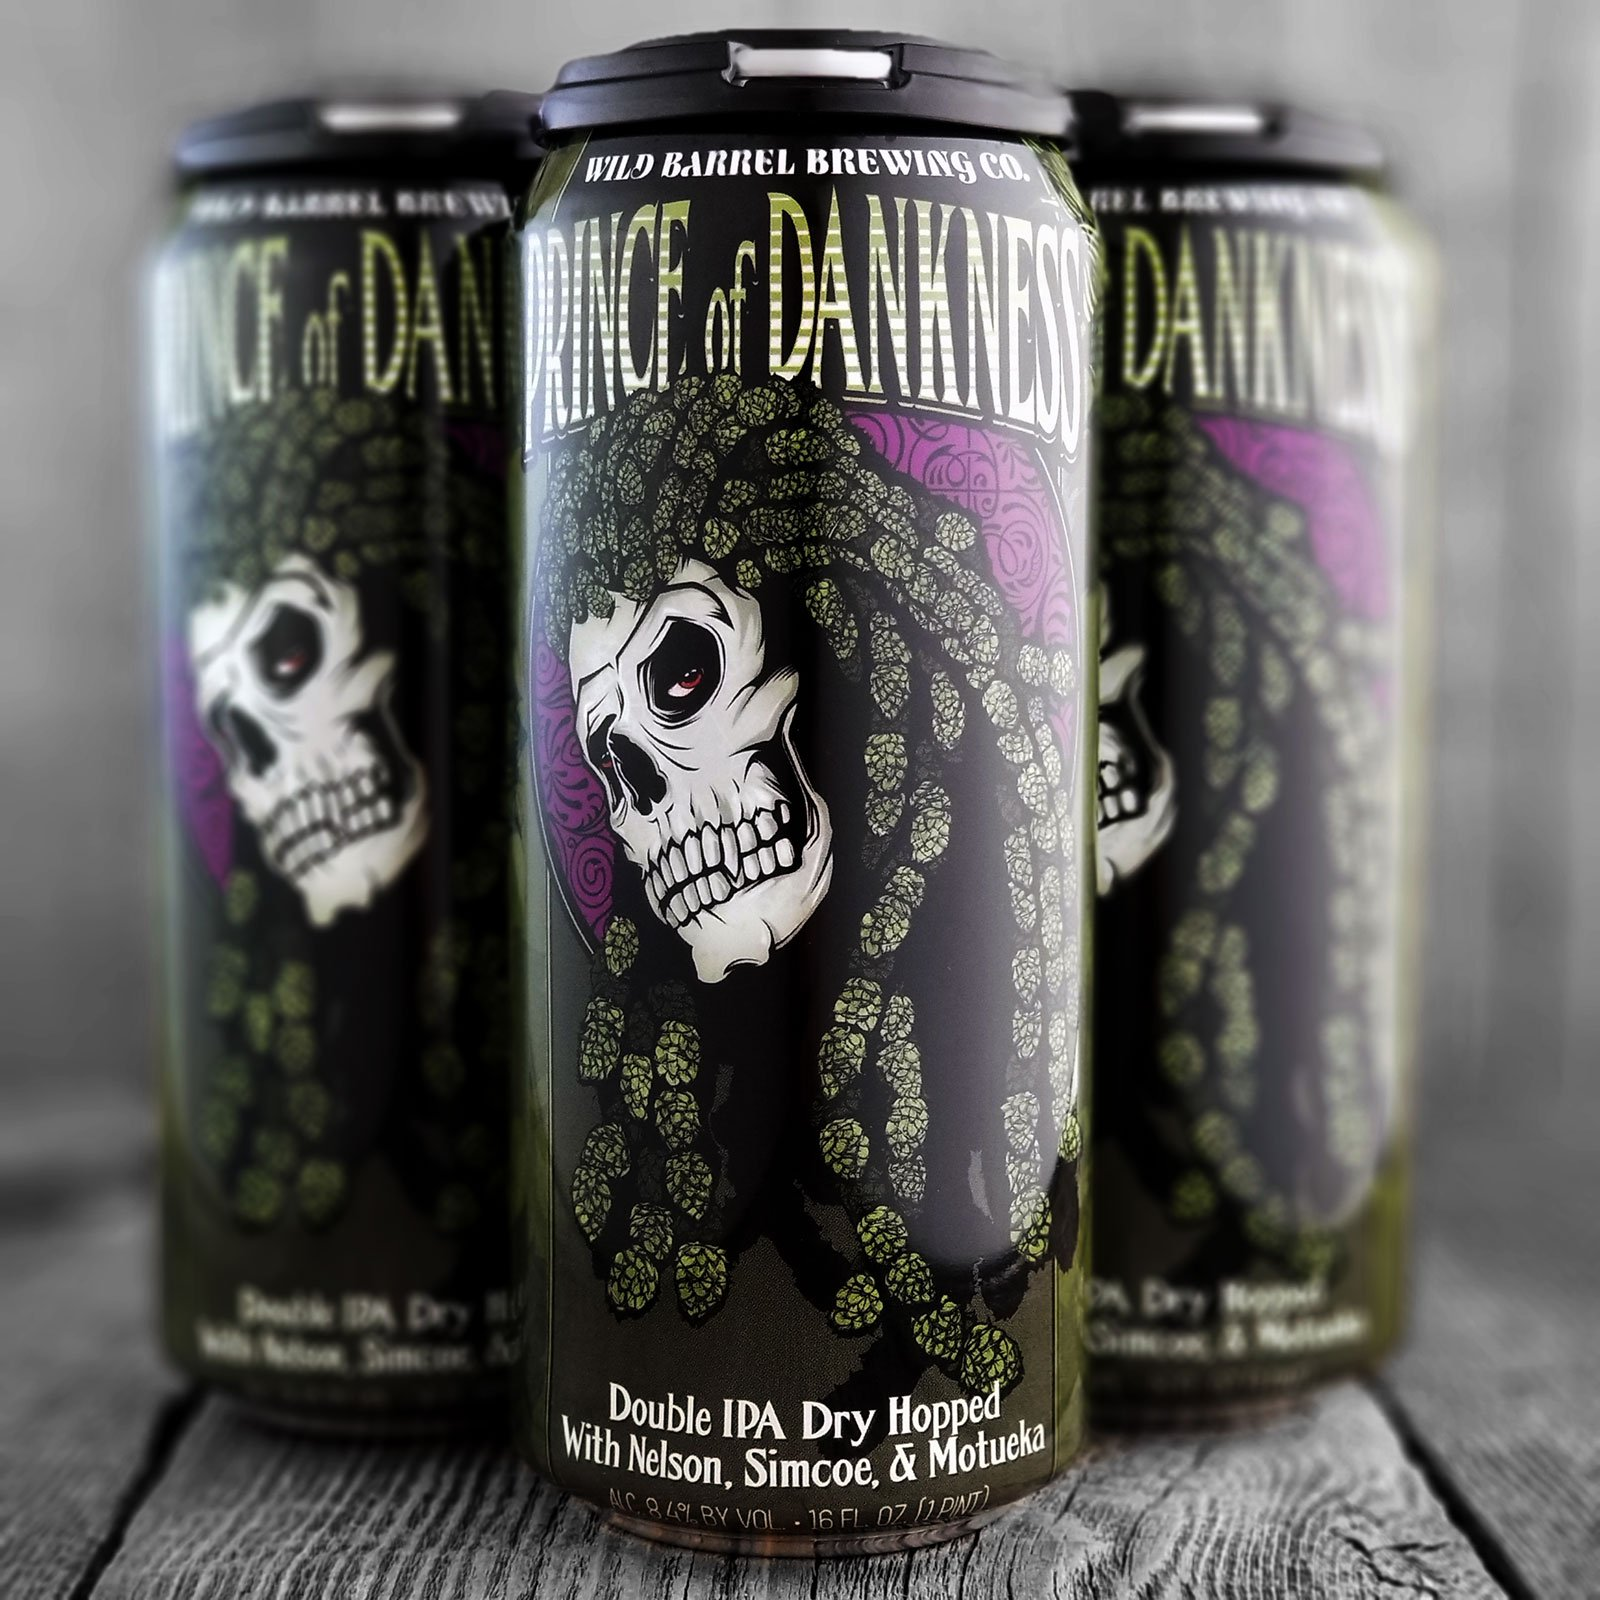 wild-barrel-prince-of-dankness-4pack-cans_2048x2048.jpg